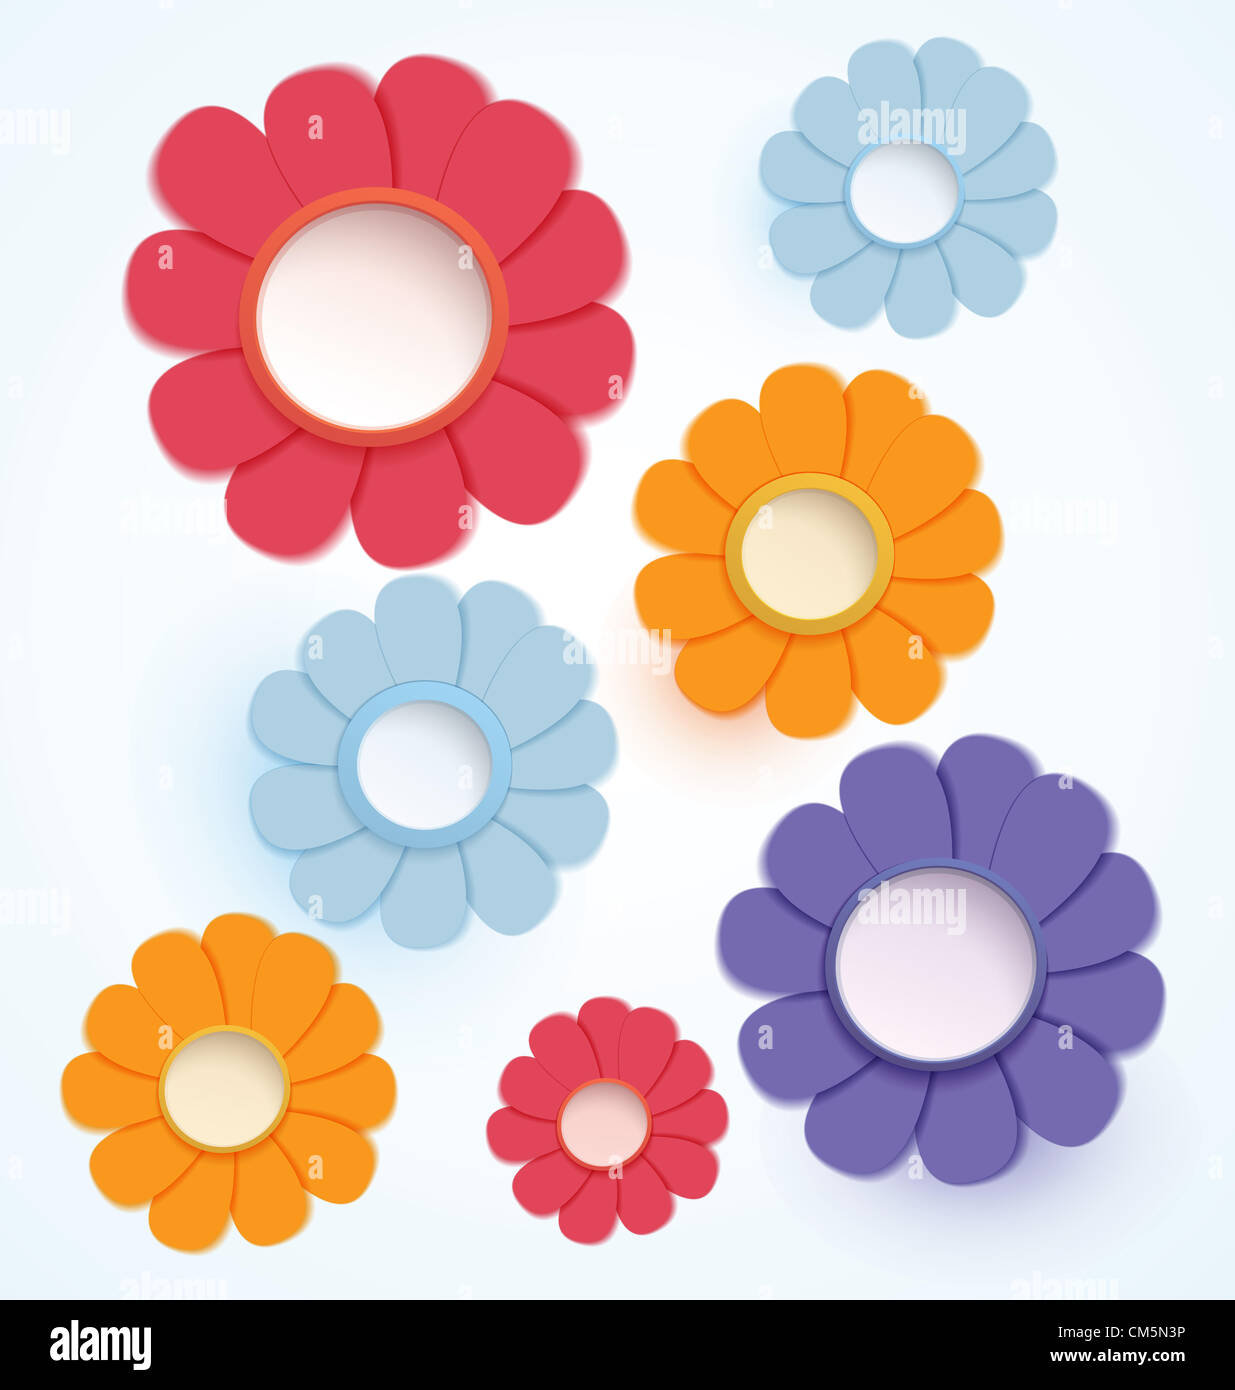 Raster illustration paper crafted colorful daisy flowers - Stock Image